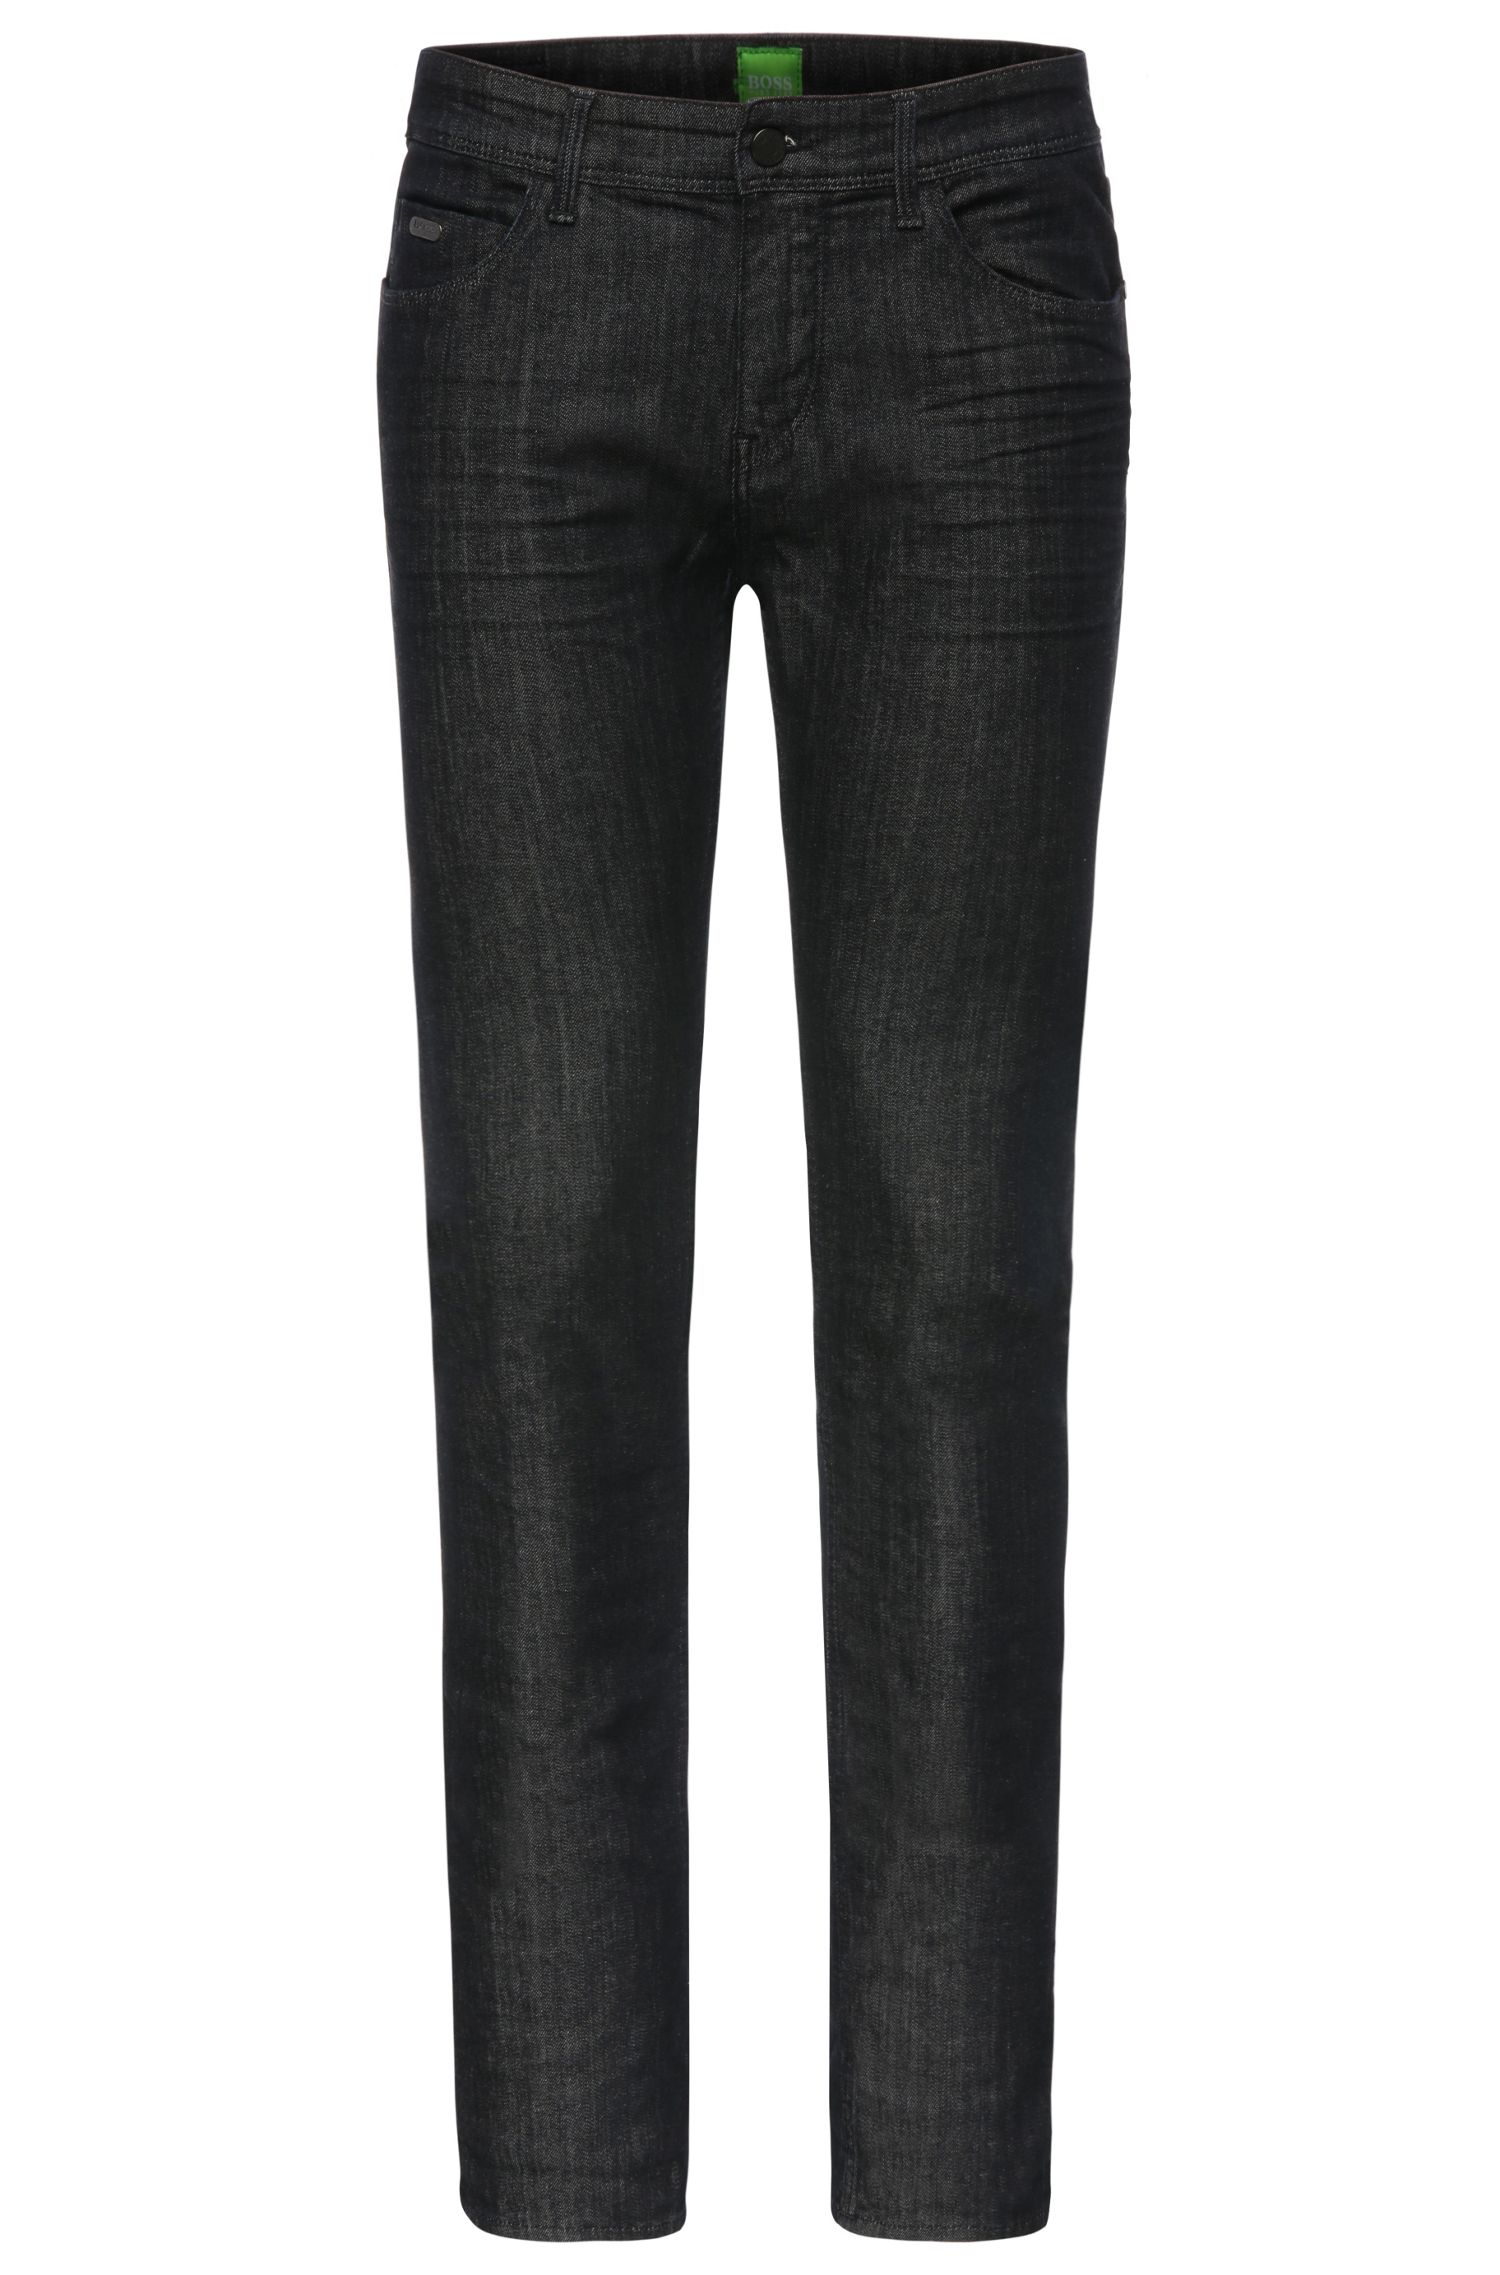 'Dayan' | Extra Slim Fit, Stretch Cotton Jeans